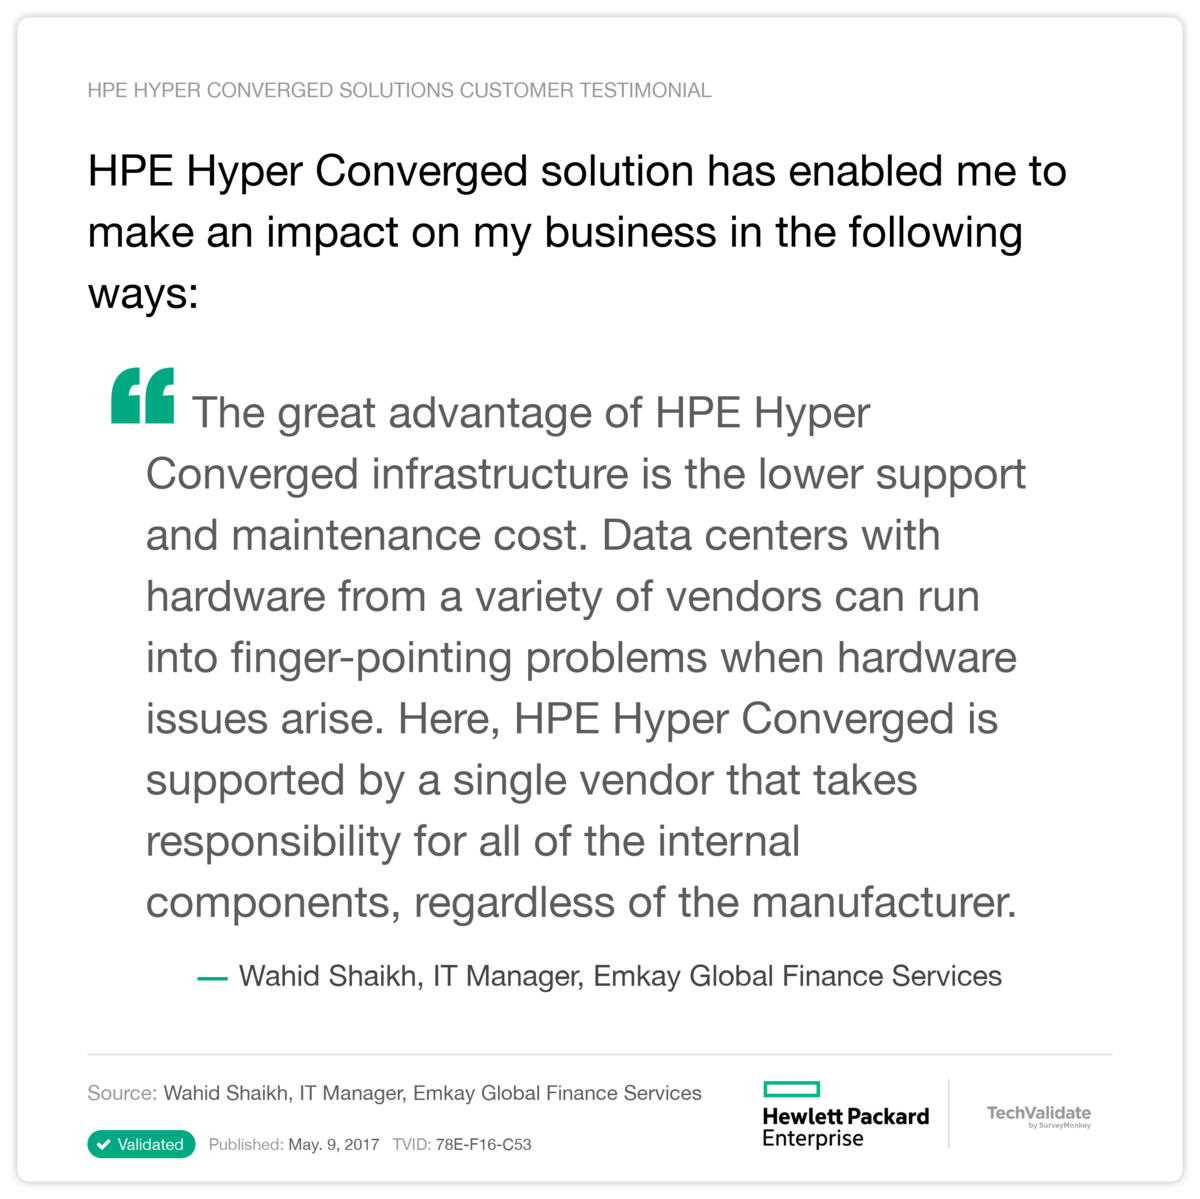 HPE Hyper Converged solution has enabled me to make an impact on my business in the following ways: